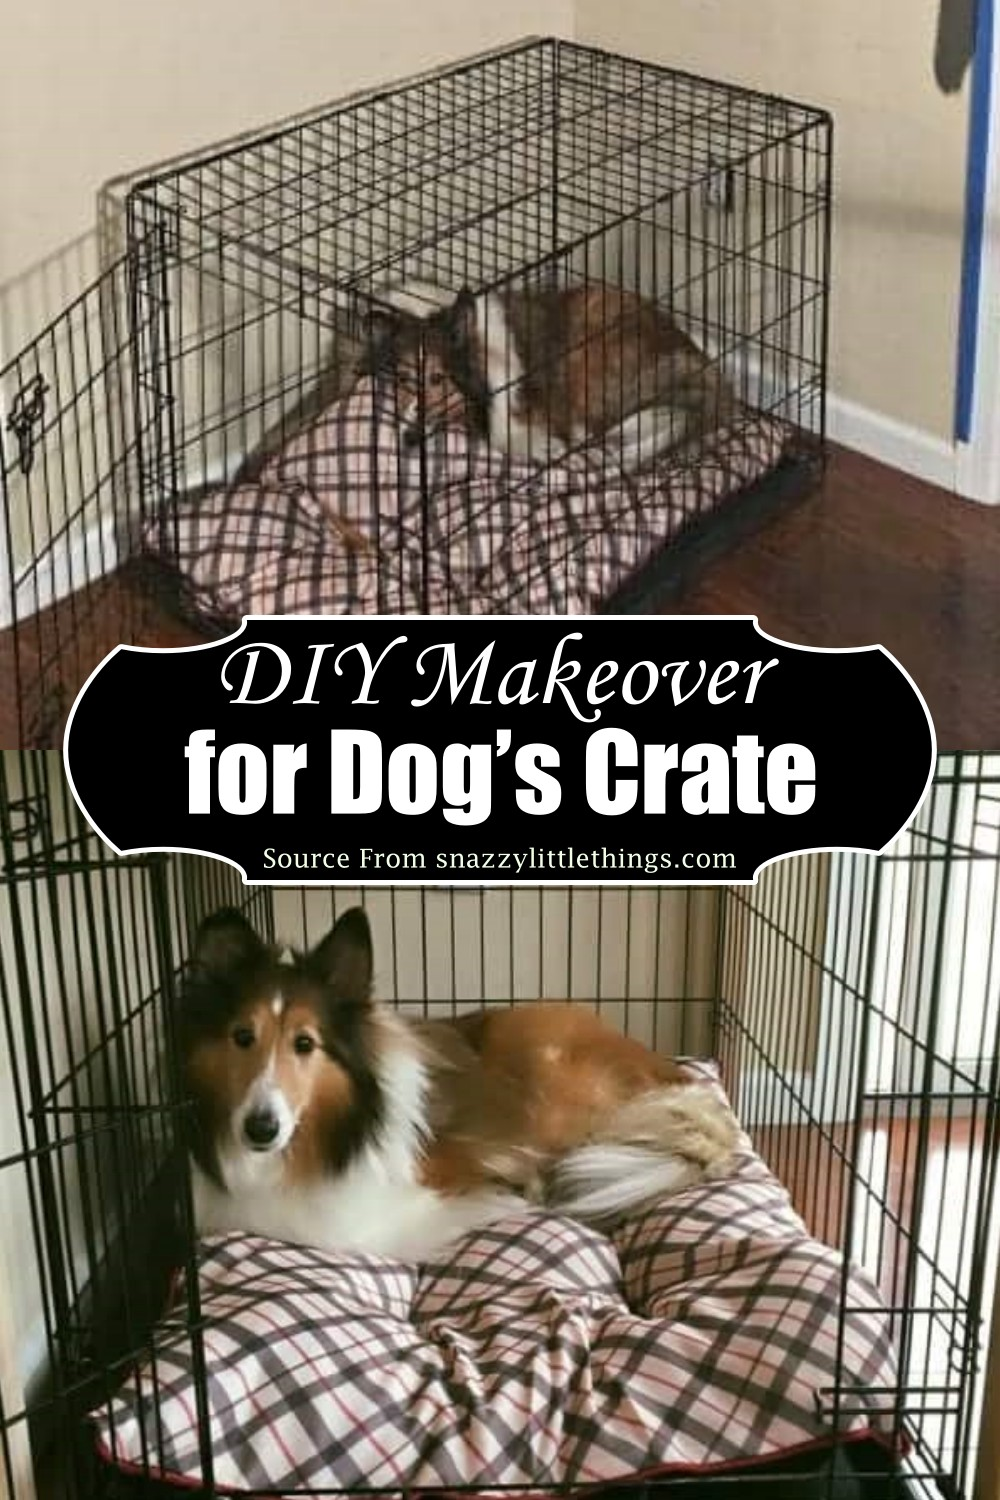 DIY Makeover for Dog's Crate